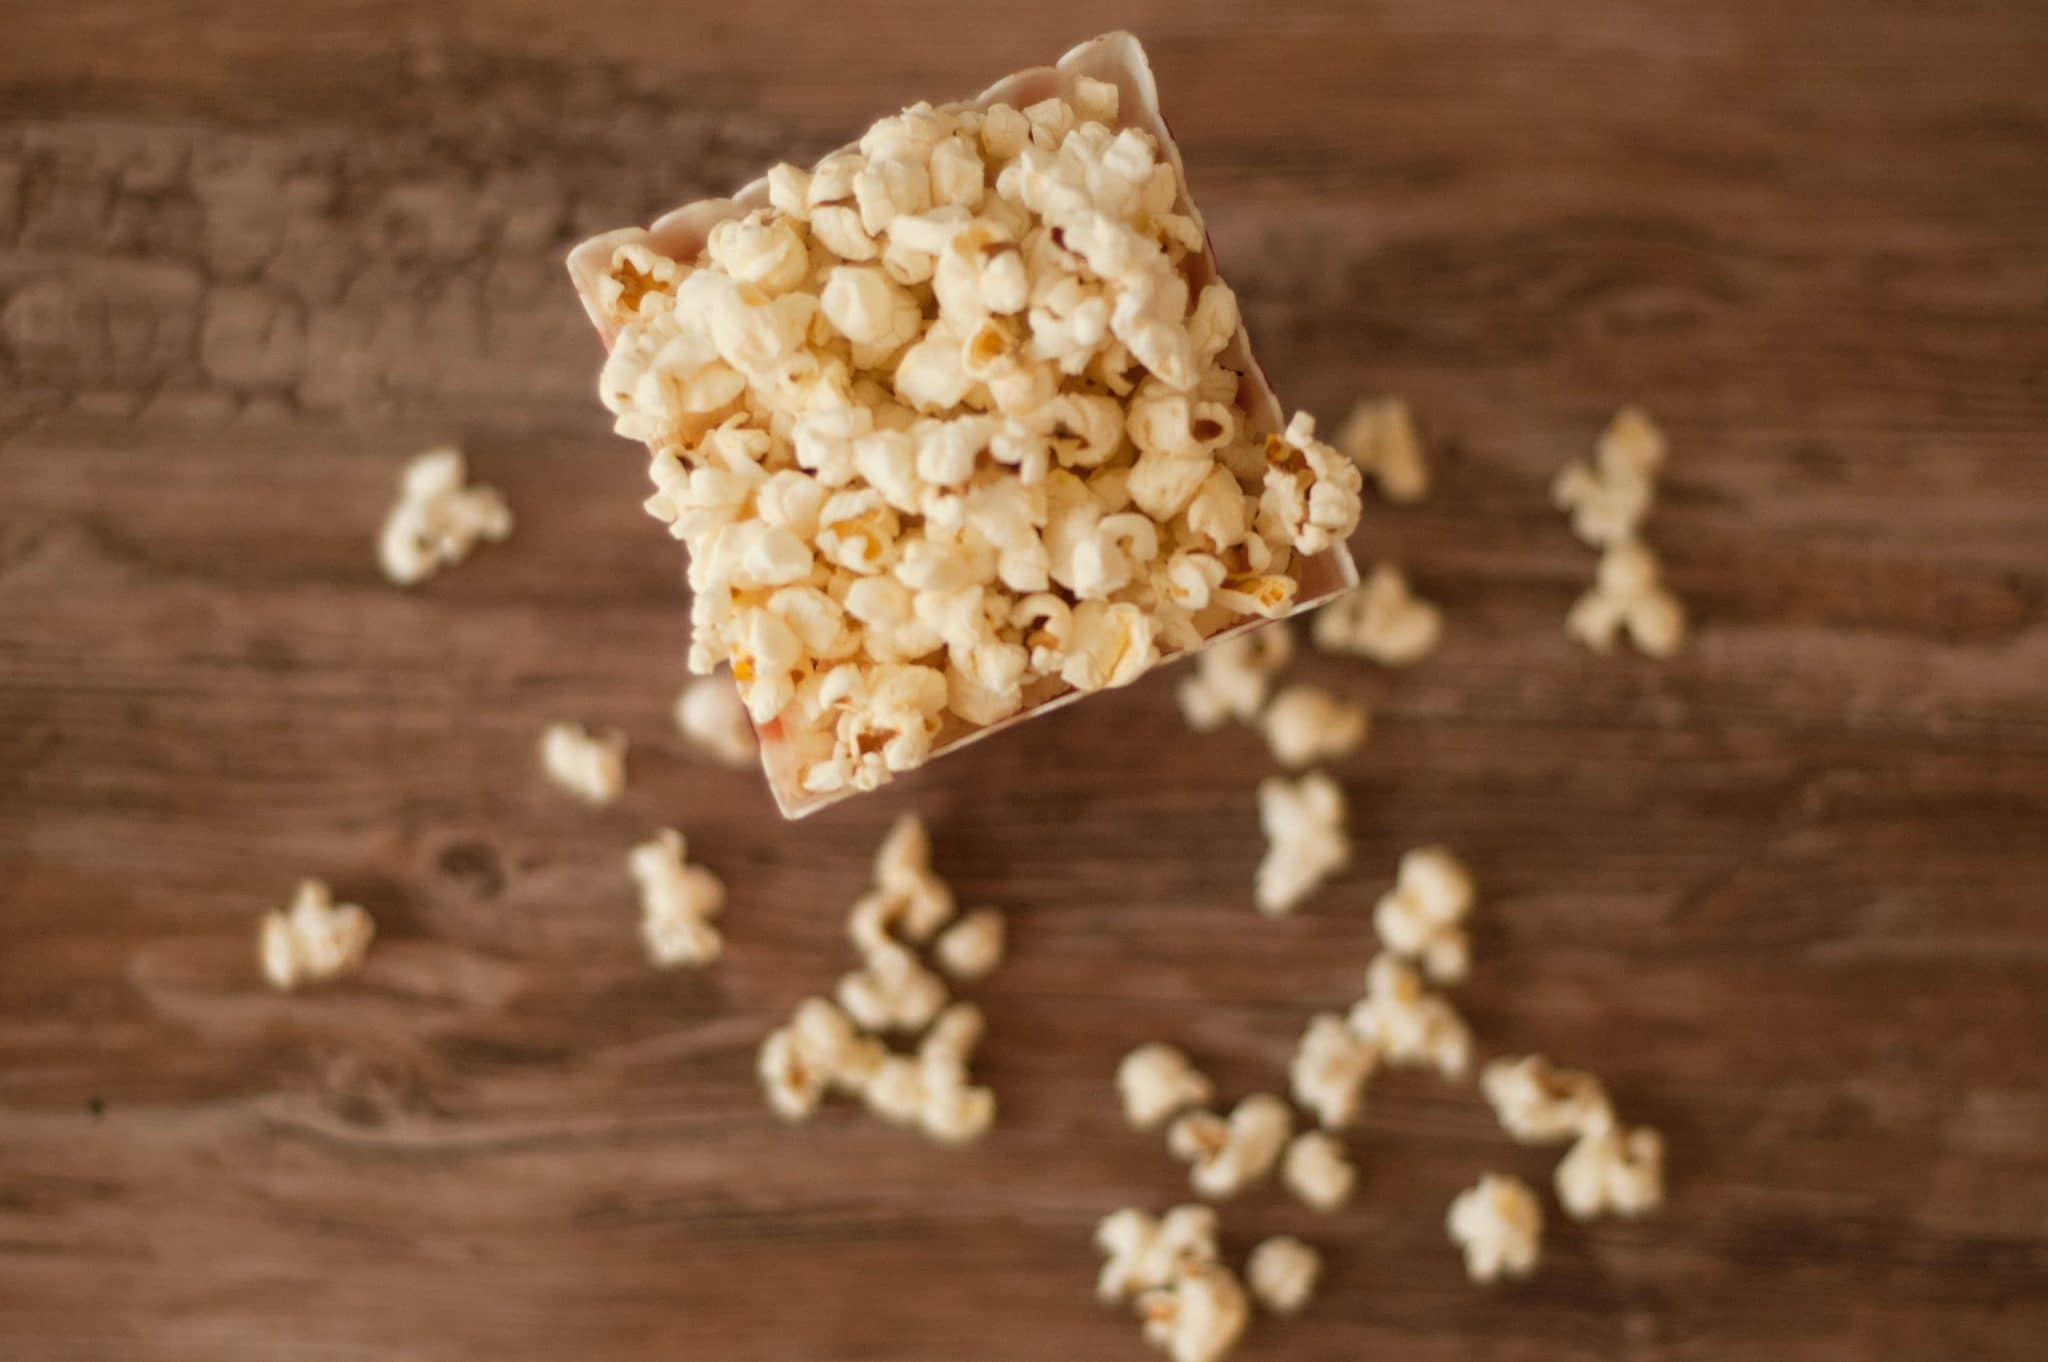 Try this easy recipe for homemade buttered popcorn and you'll never want to buy the microwave bags again! It's movie theatre flavor with REAL ingredients!